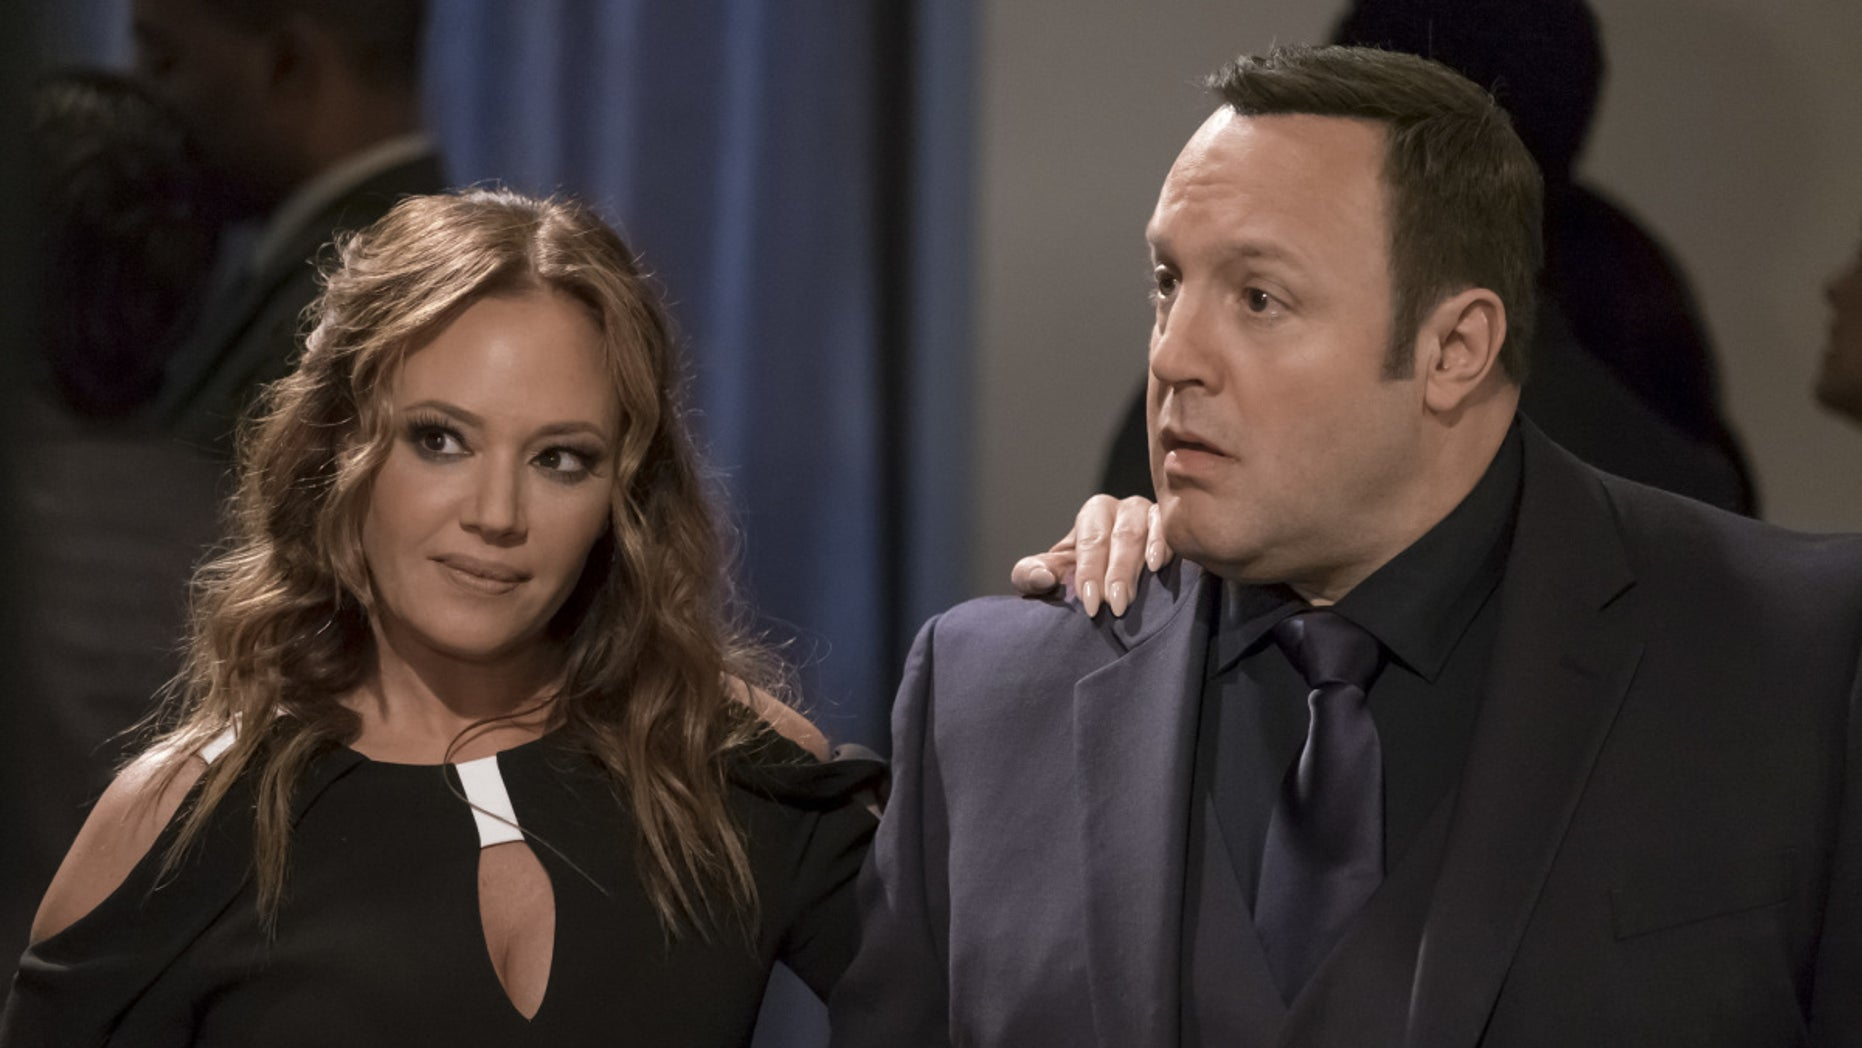 """Sting of Queens: Part One"" and ""Sting of Queens: Part Two""-- Kevin begrudgingly agrees to come out of retirement briefly to reprise an undercover assignment where he and his old rival Vanessa Cellucci (Leah Remini), once again, pose as husband and wife. Also, Donna is up for a promotion, Kendra gets accepted to law school, and Chale gets a lucrative new job, on part one of the two-part first season finale of KEVIN CAN WAIT, Monday, May 1 (8:00-8:30 PM, ET/PT) and Monday, May 8 (8:00-8:30 PM, ET/PT) on the CBS Television Network. Pictured: Leah Remini, Kevin James.   Credit: Jeff Neumann/CBS ©2017 CBS Broadcasting, Inc. All Rights Reserved"